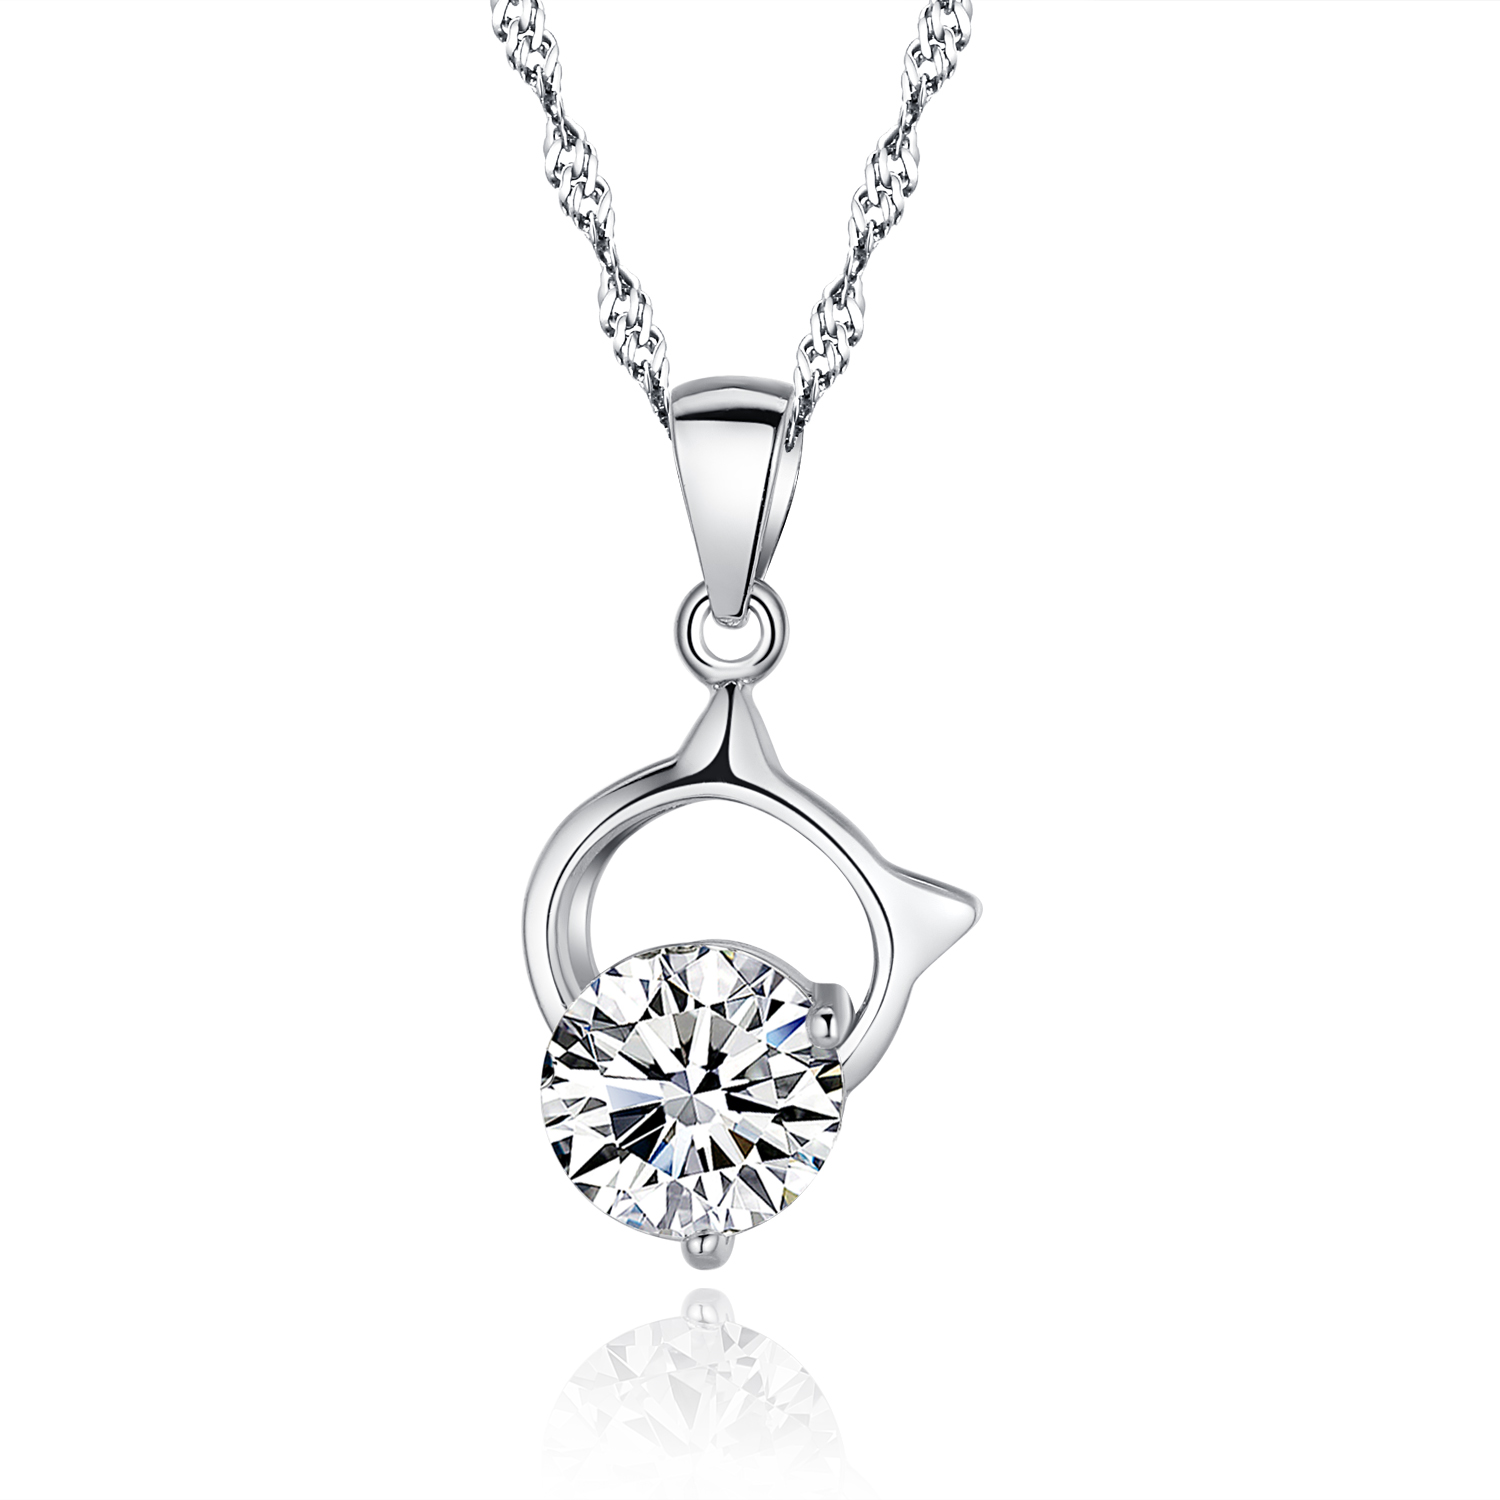 c044c7f3e Google Chicute Sterling 925 Silver Pendant Necklace Jewelry Set With Kitty  Cat Head Pendentif Paved Cubic Zirconia CZ And 18 Inch Silver Chain on  Storenvy